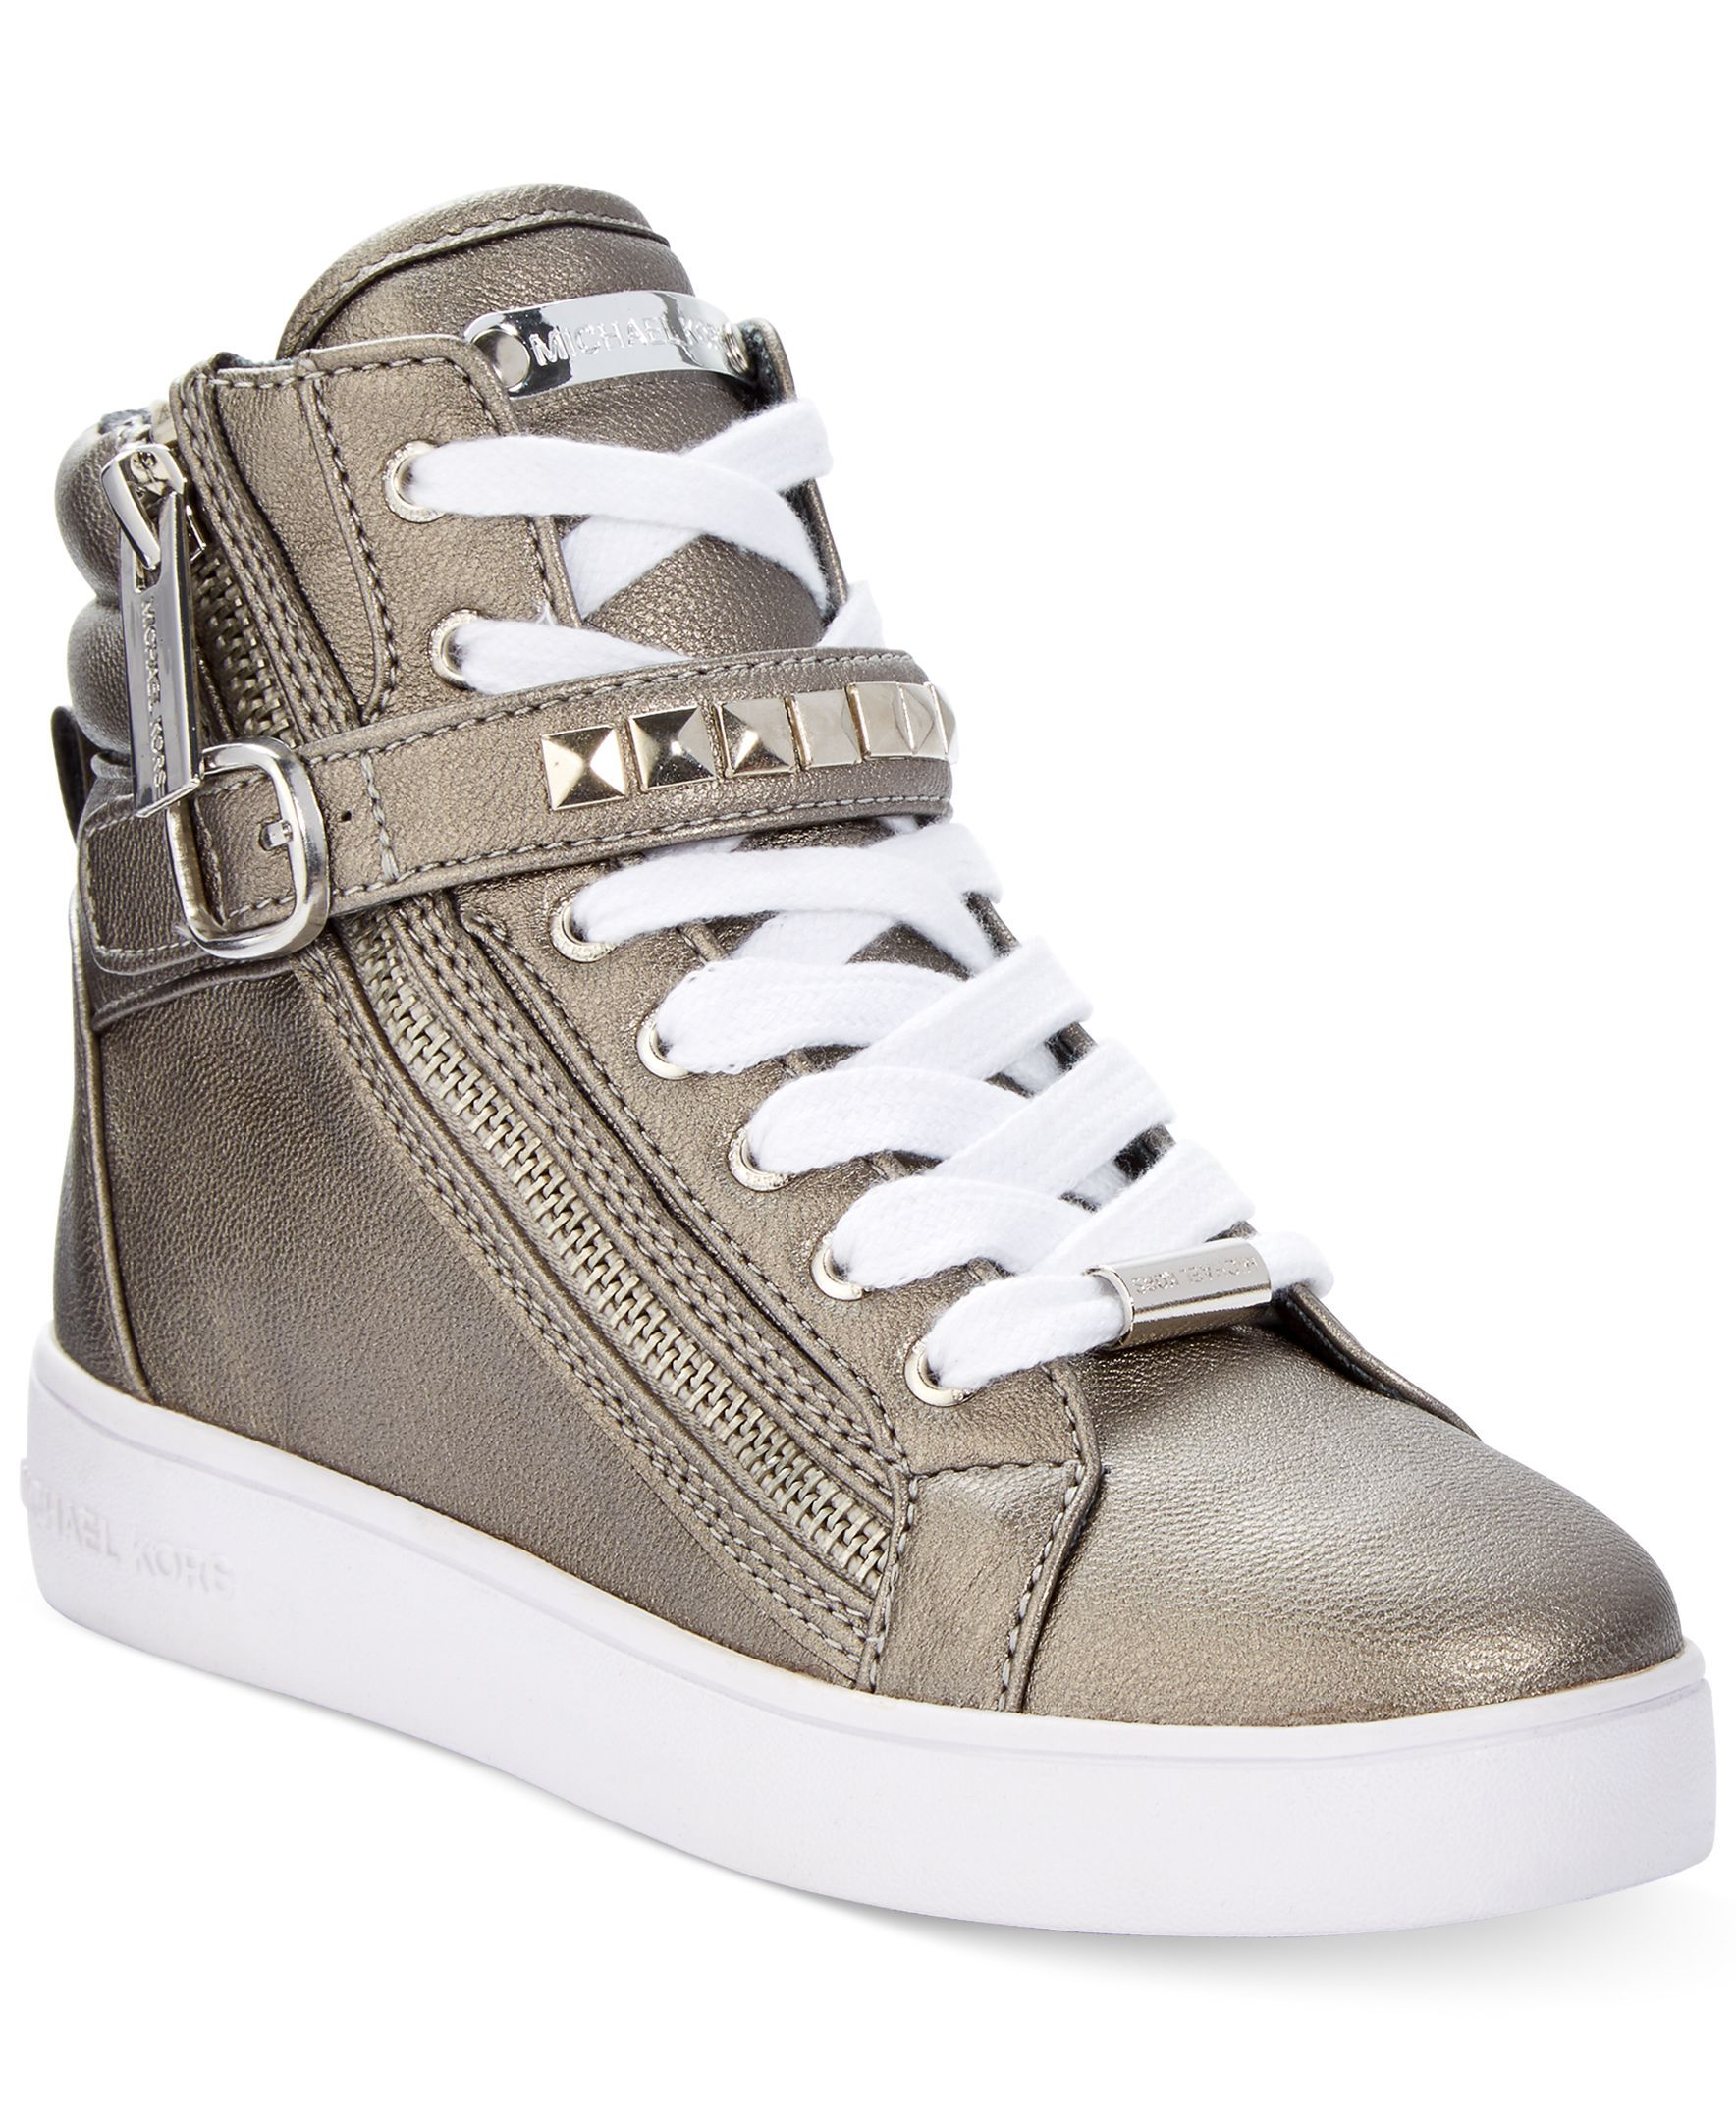 Michael Kors Ivy Rory Sneakers Little Girls & Big Girls